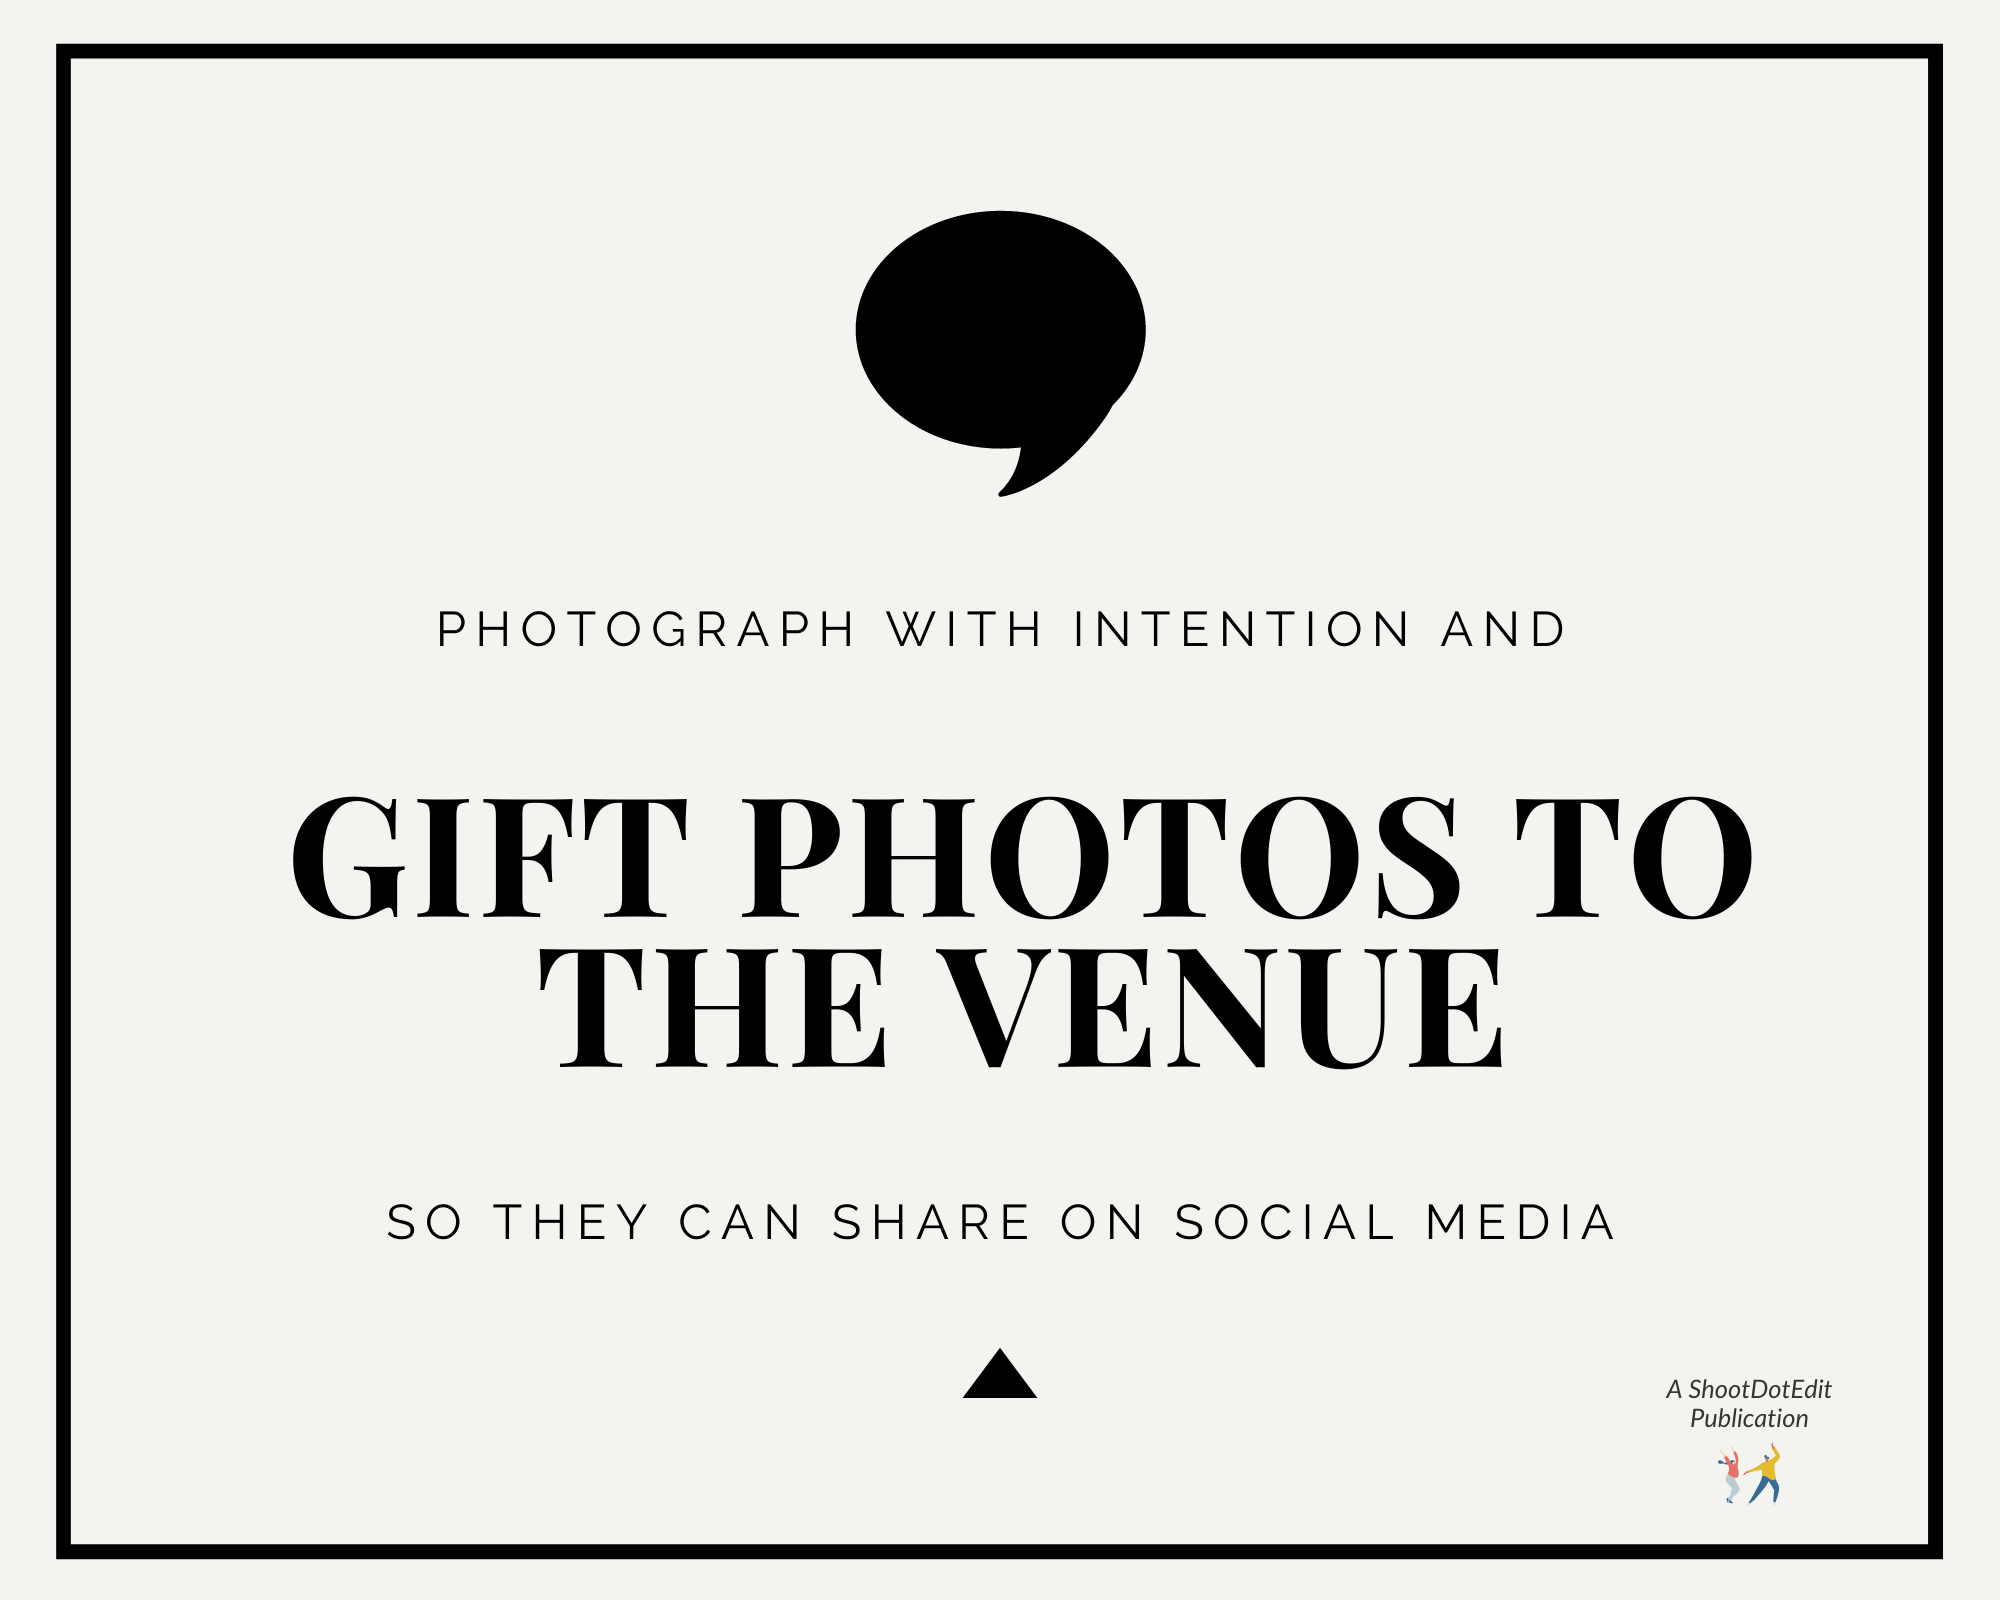 Graphic displaying - Photograph with intention and gift photos to the venue so they can share on social media